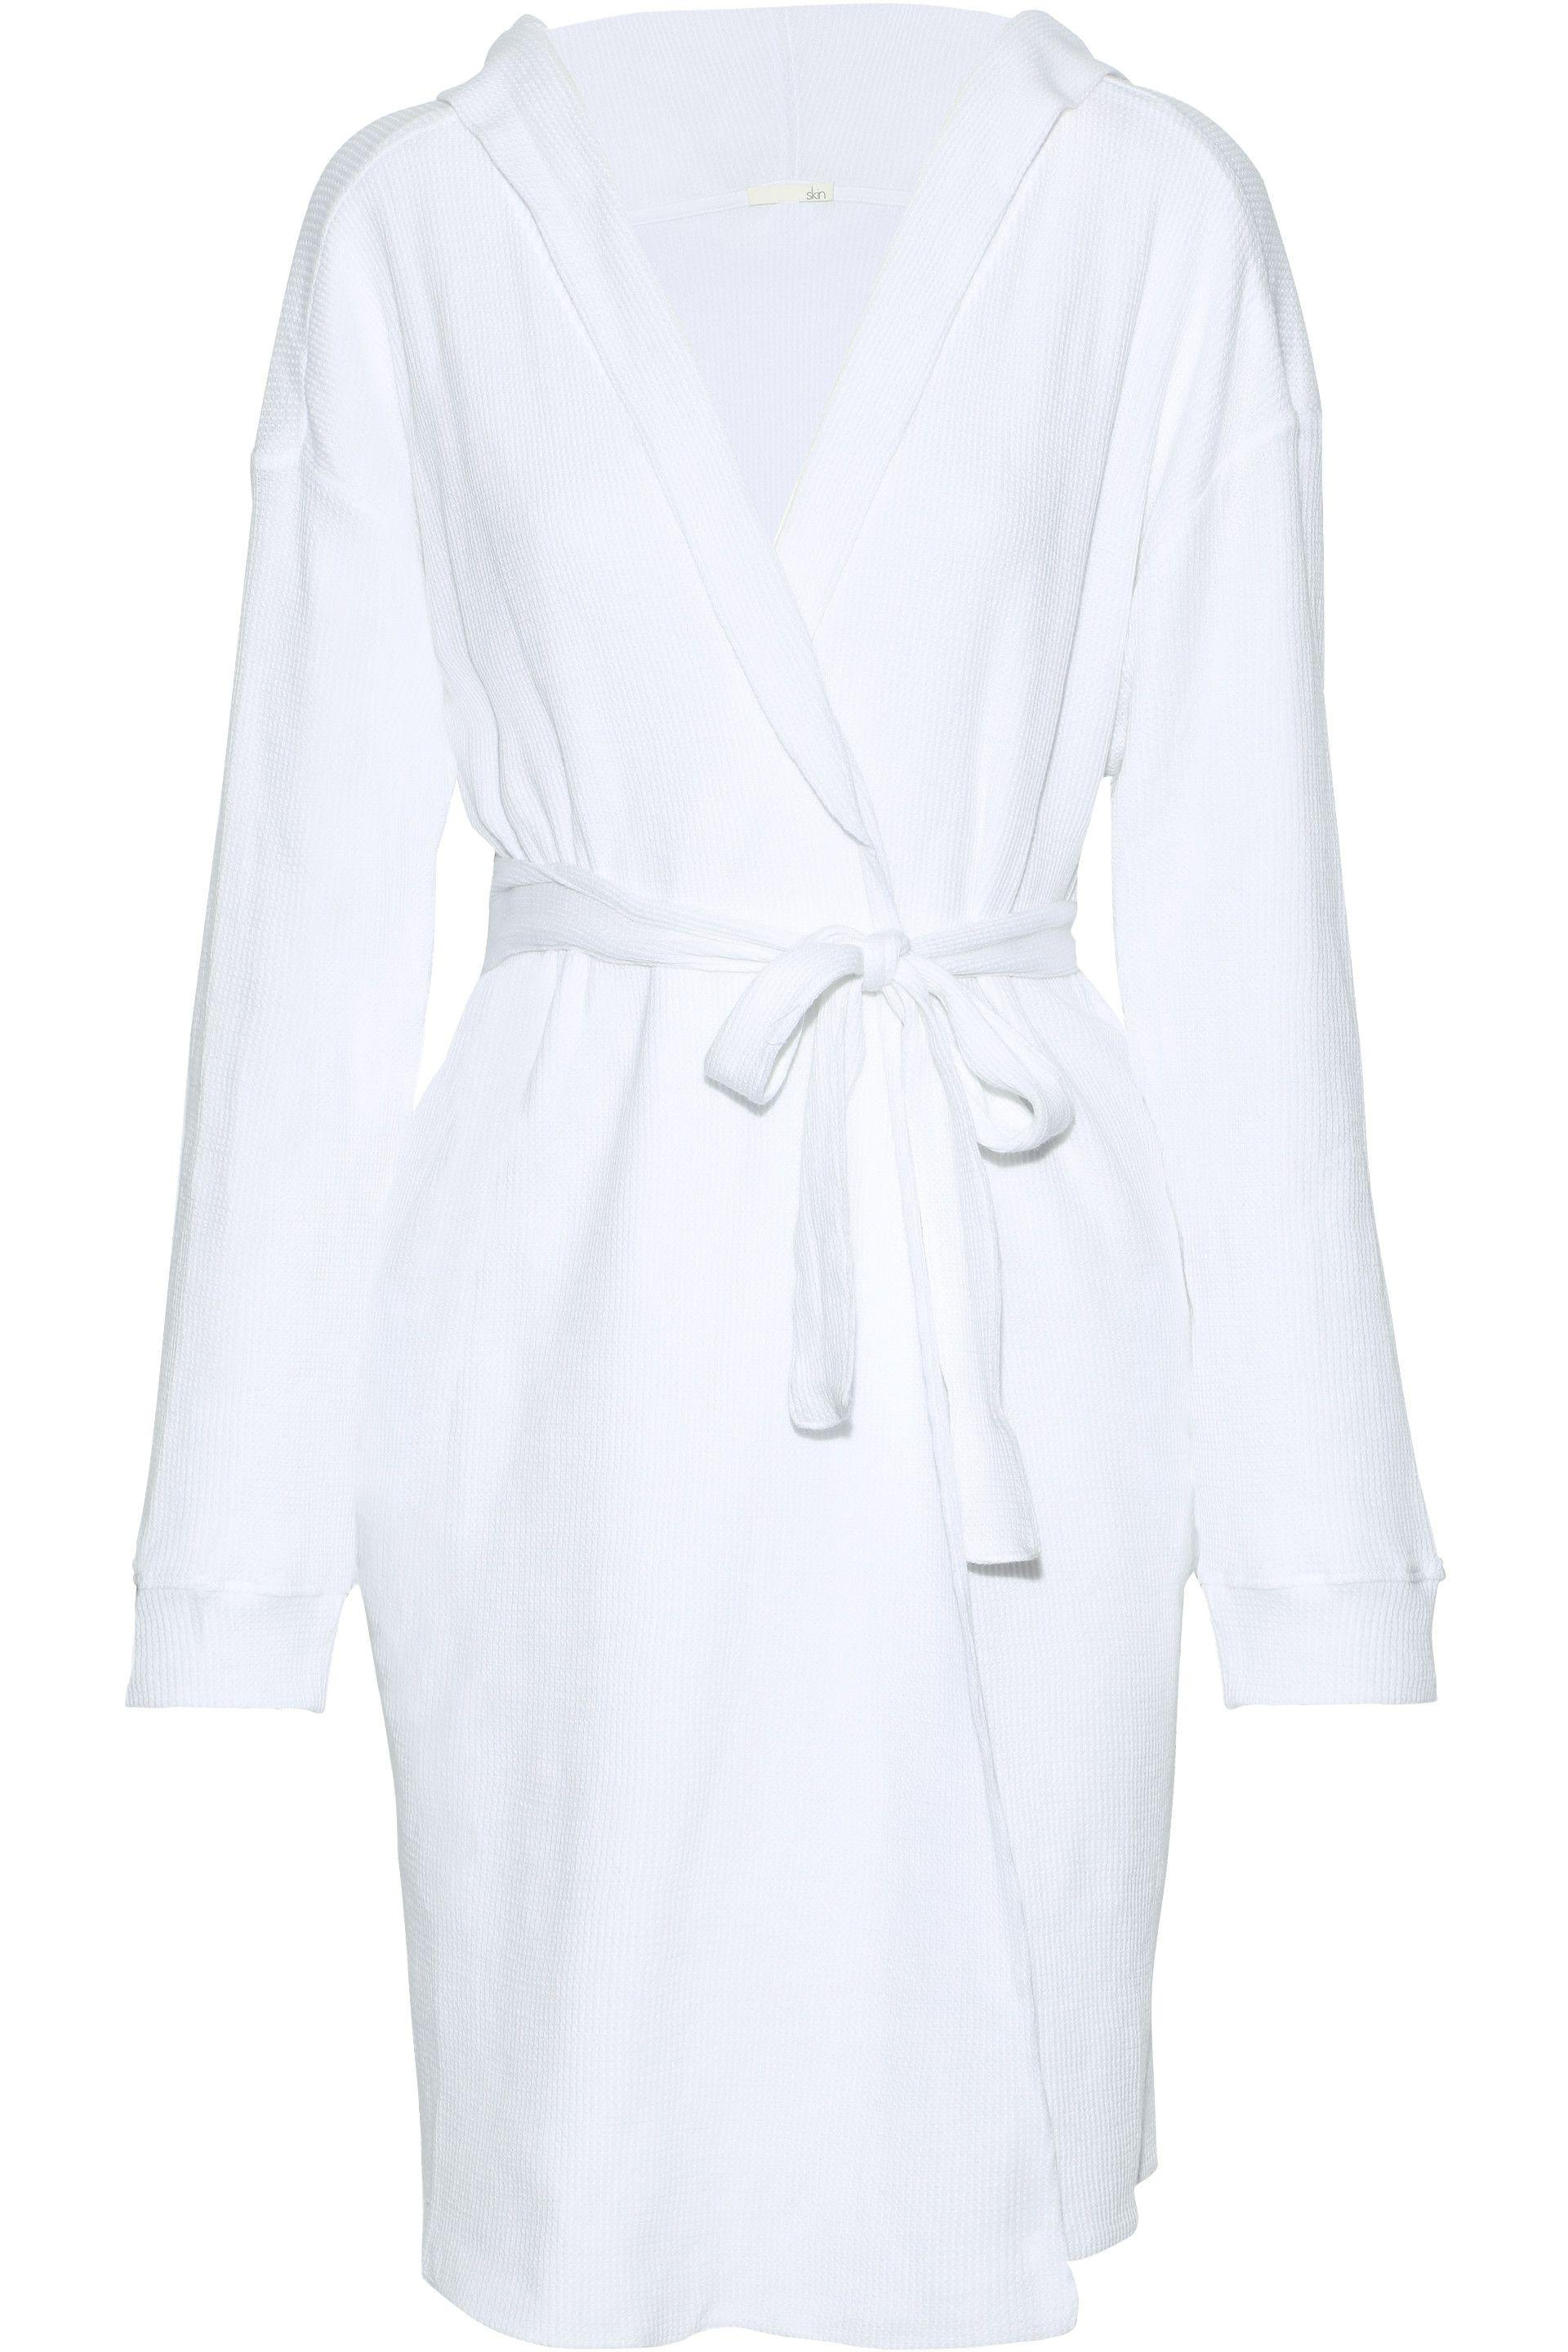 6255adce9d Lyst - Skin Woman Avedon Waffle-knit Cotton Hooded Robe White in White